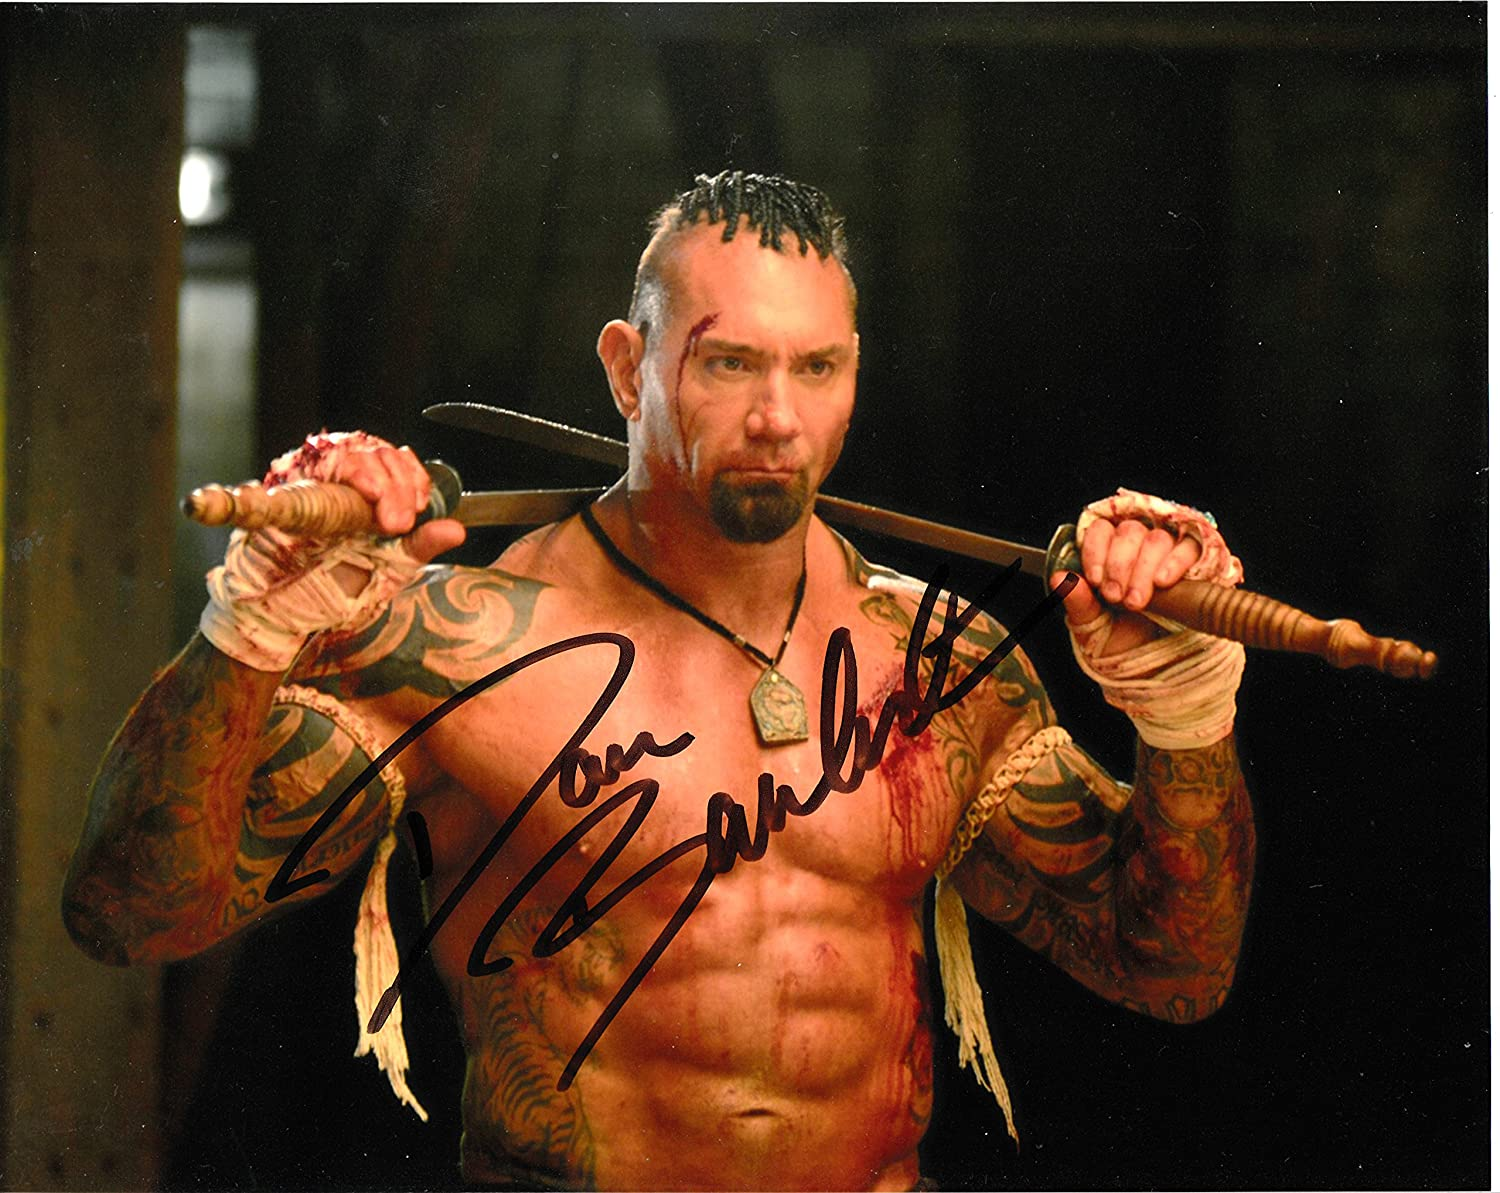 Signing Dreams Autographs Dave Bautista unterzeichnet 25,4 x 20,3 cm Farbe Foto – Spectre – Guardians Of The Galaxy – 100% Echtheit garantiert – in Person Dealer, UACC Registriert #